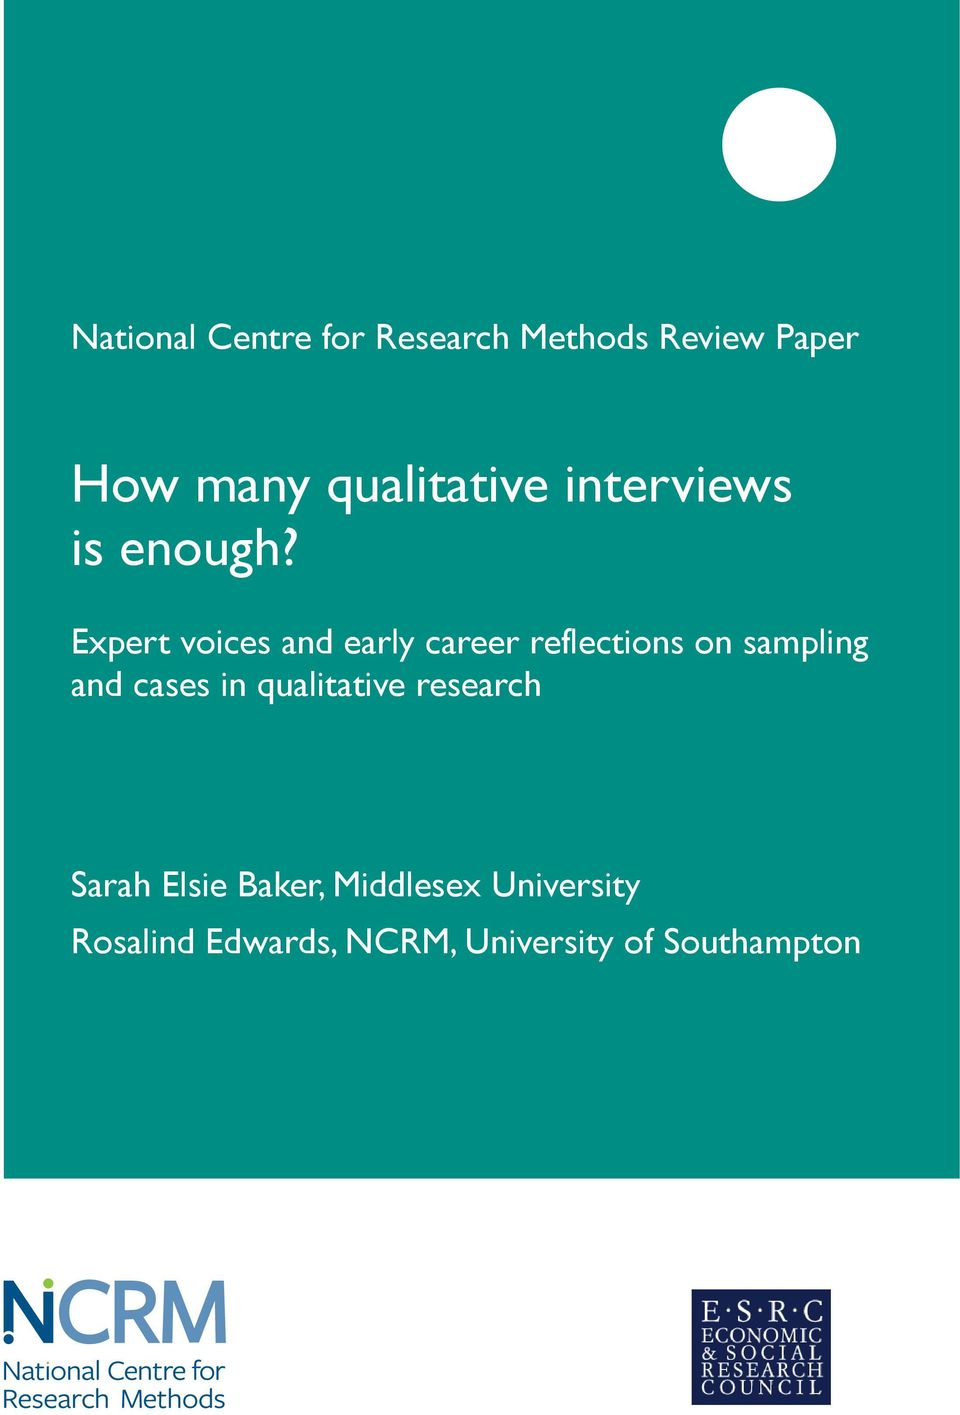 Expert voices and early career reflections on sampling and cases in